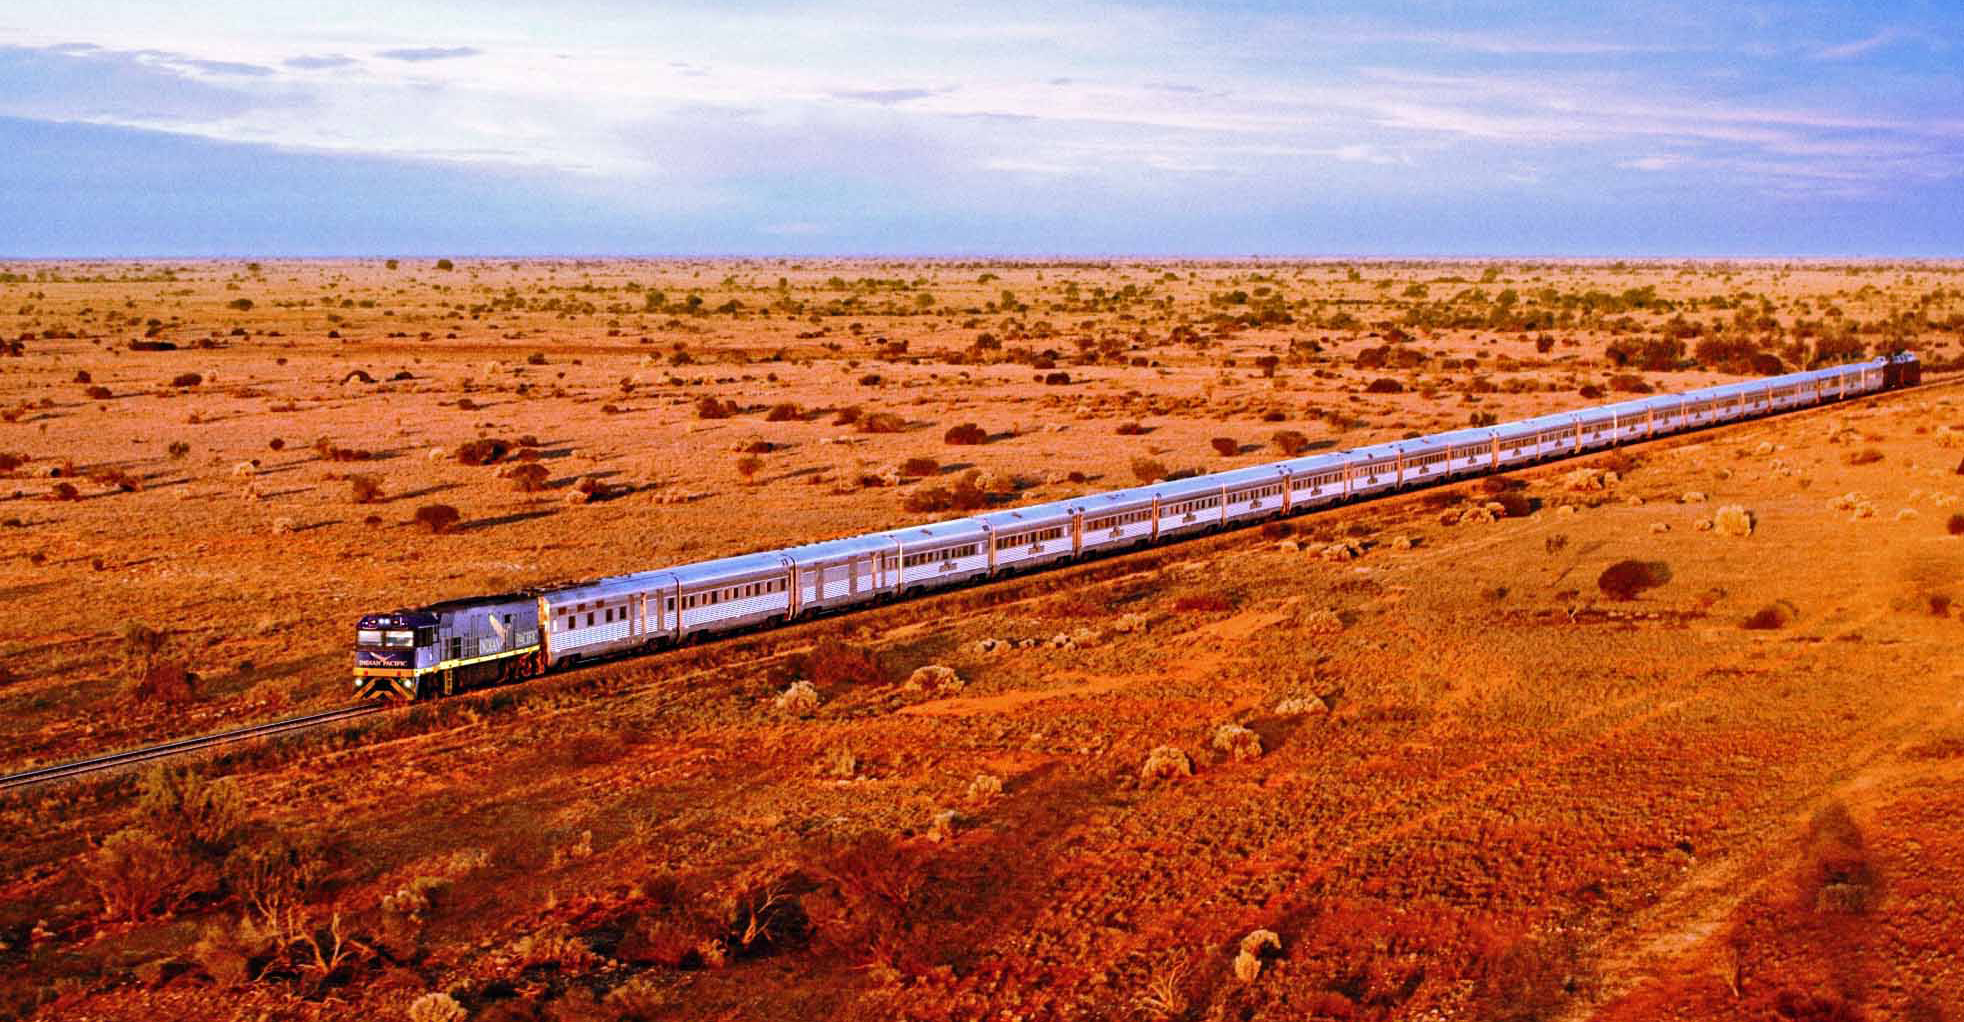 Outback: The Indian Pacific takes 65 hours to travel from Sydney to Perth.